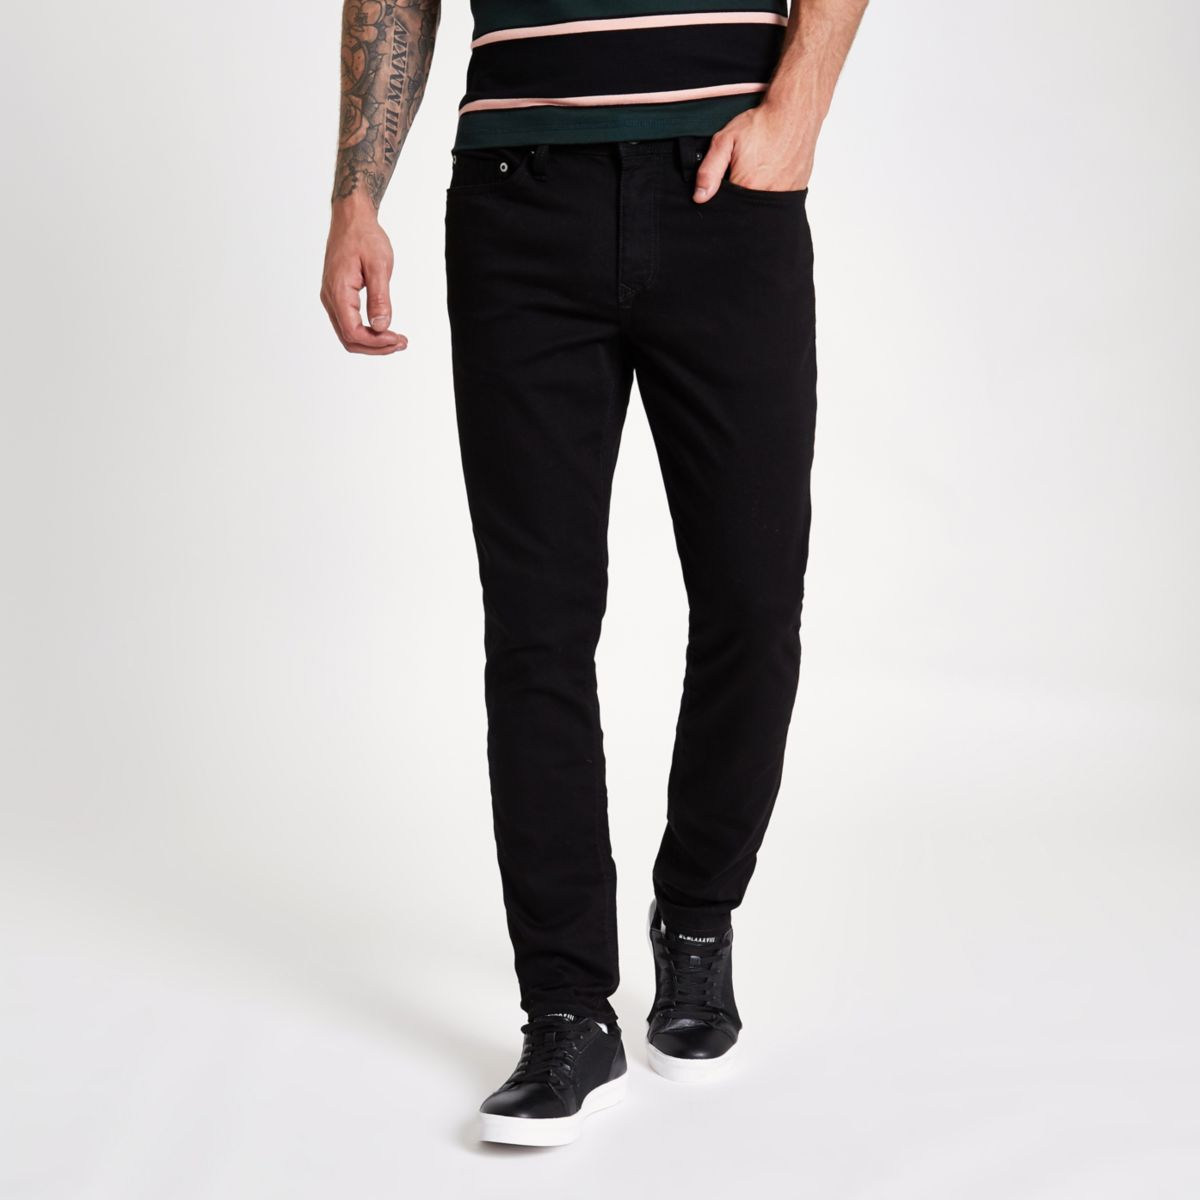 Shop For Cheap Price Mens Stay Black Dylan slim fit jeans River Island Free Shipping Low Cost 3pEPWK